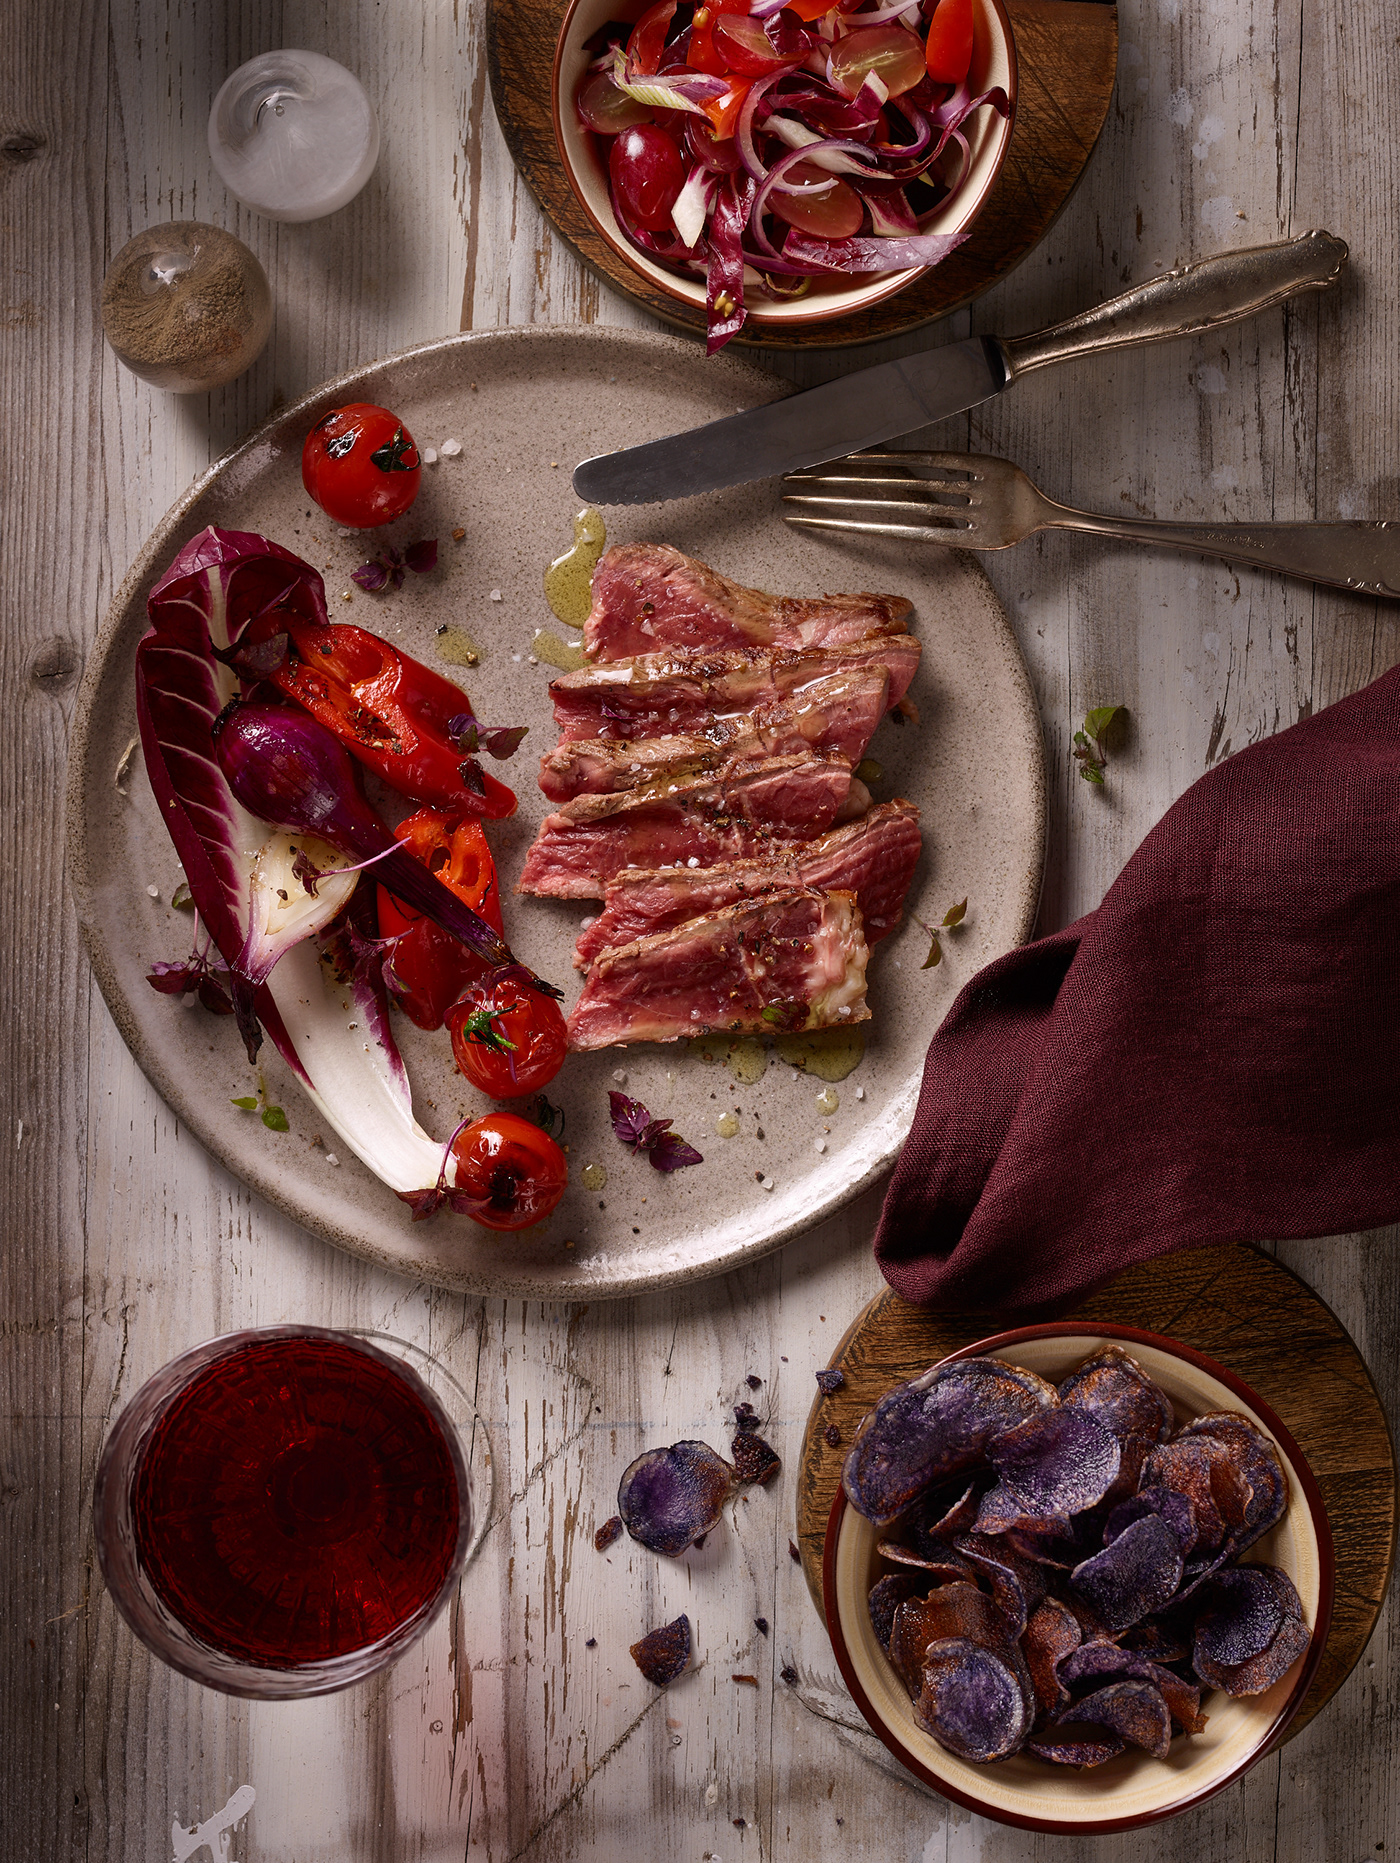 THE DAY / foto Kai Stiepel foodstylist Alissa Poller